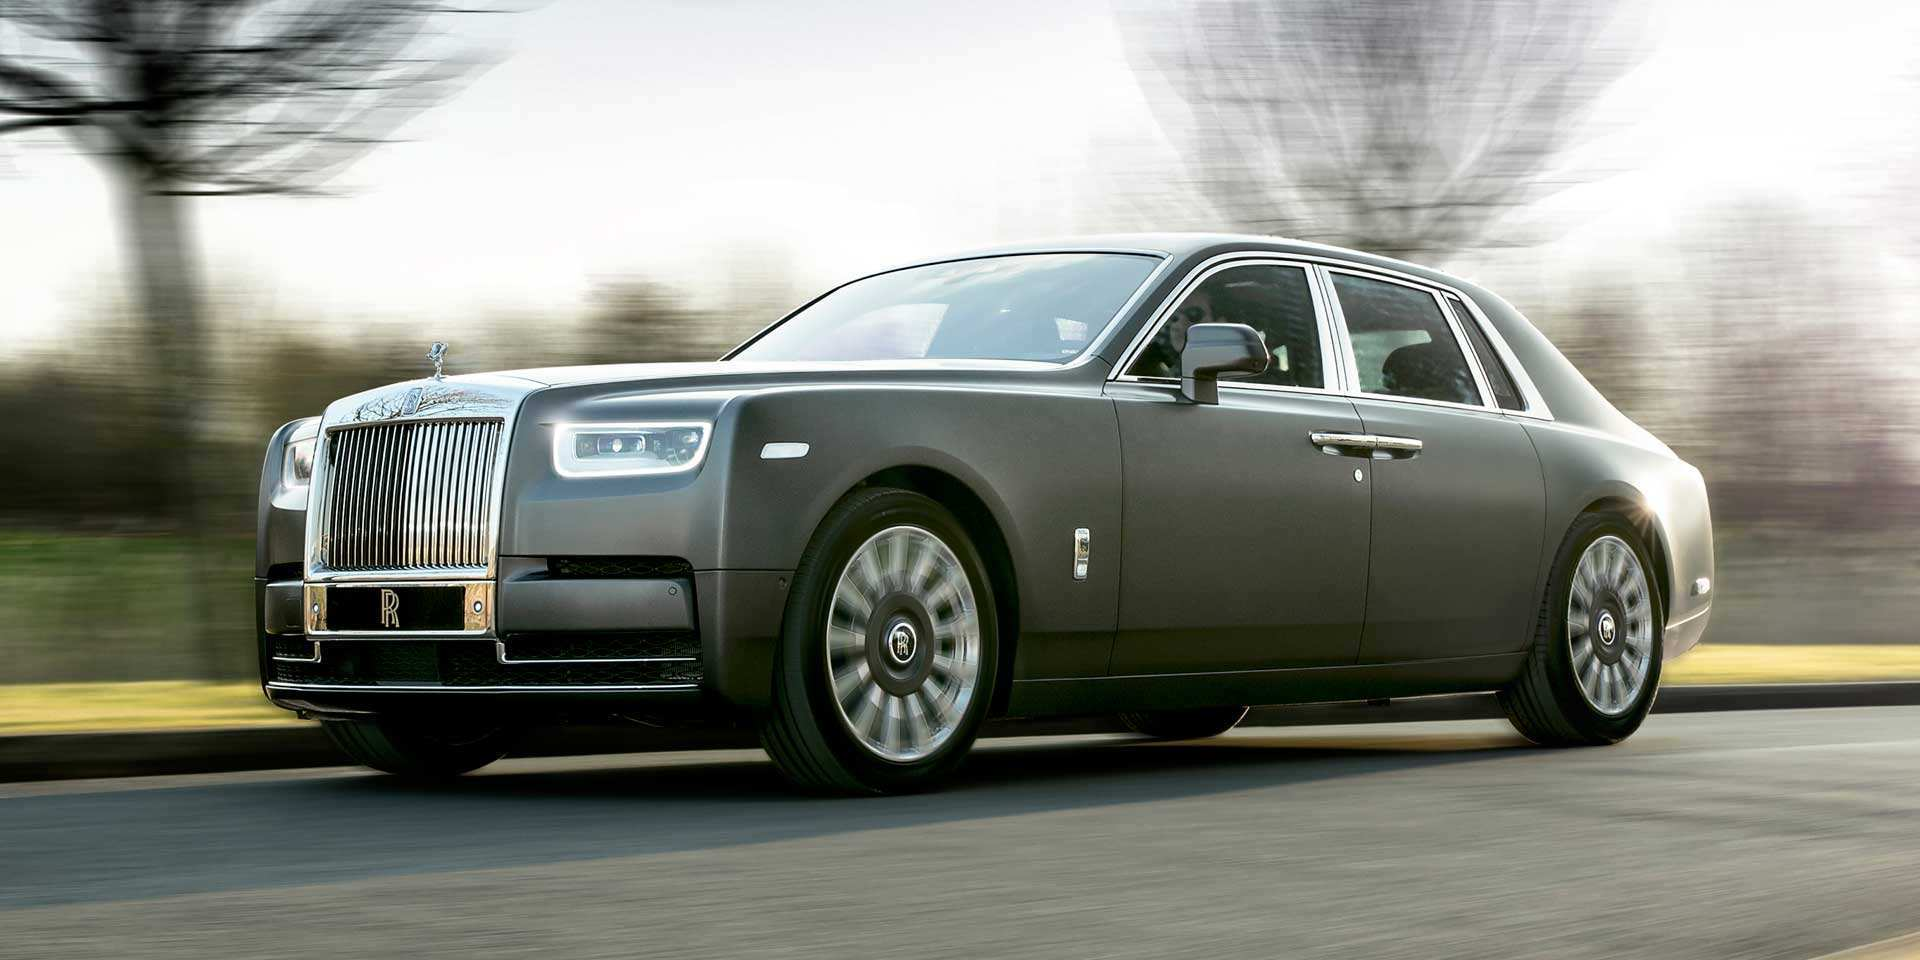 73 All New 2019 Rolls Royce Phantoms Pictures